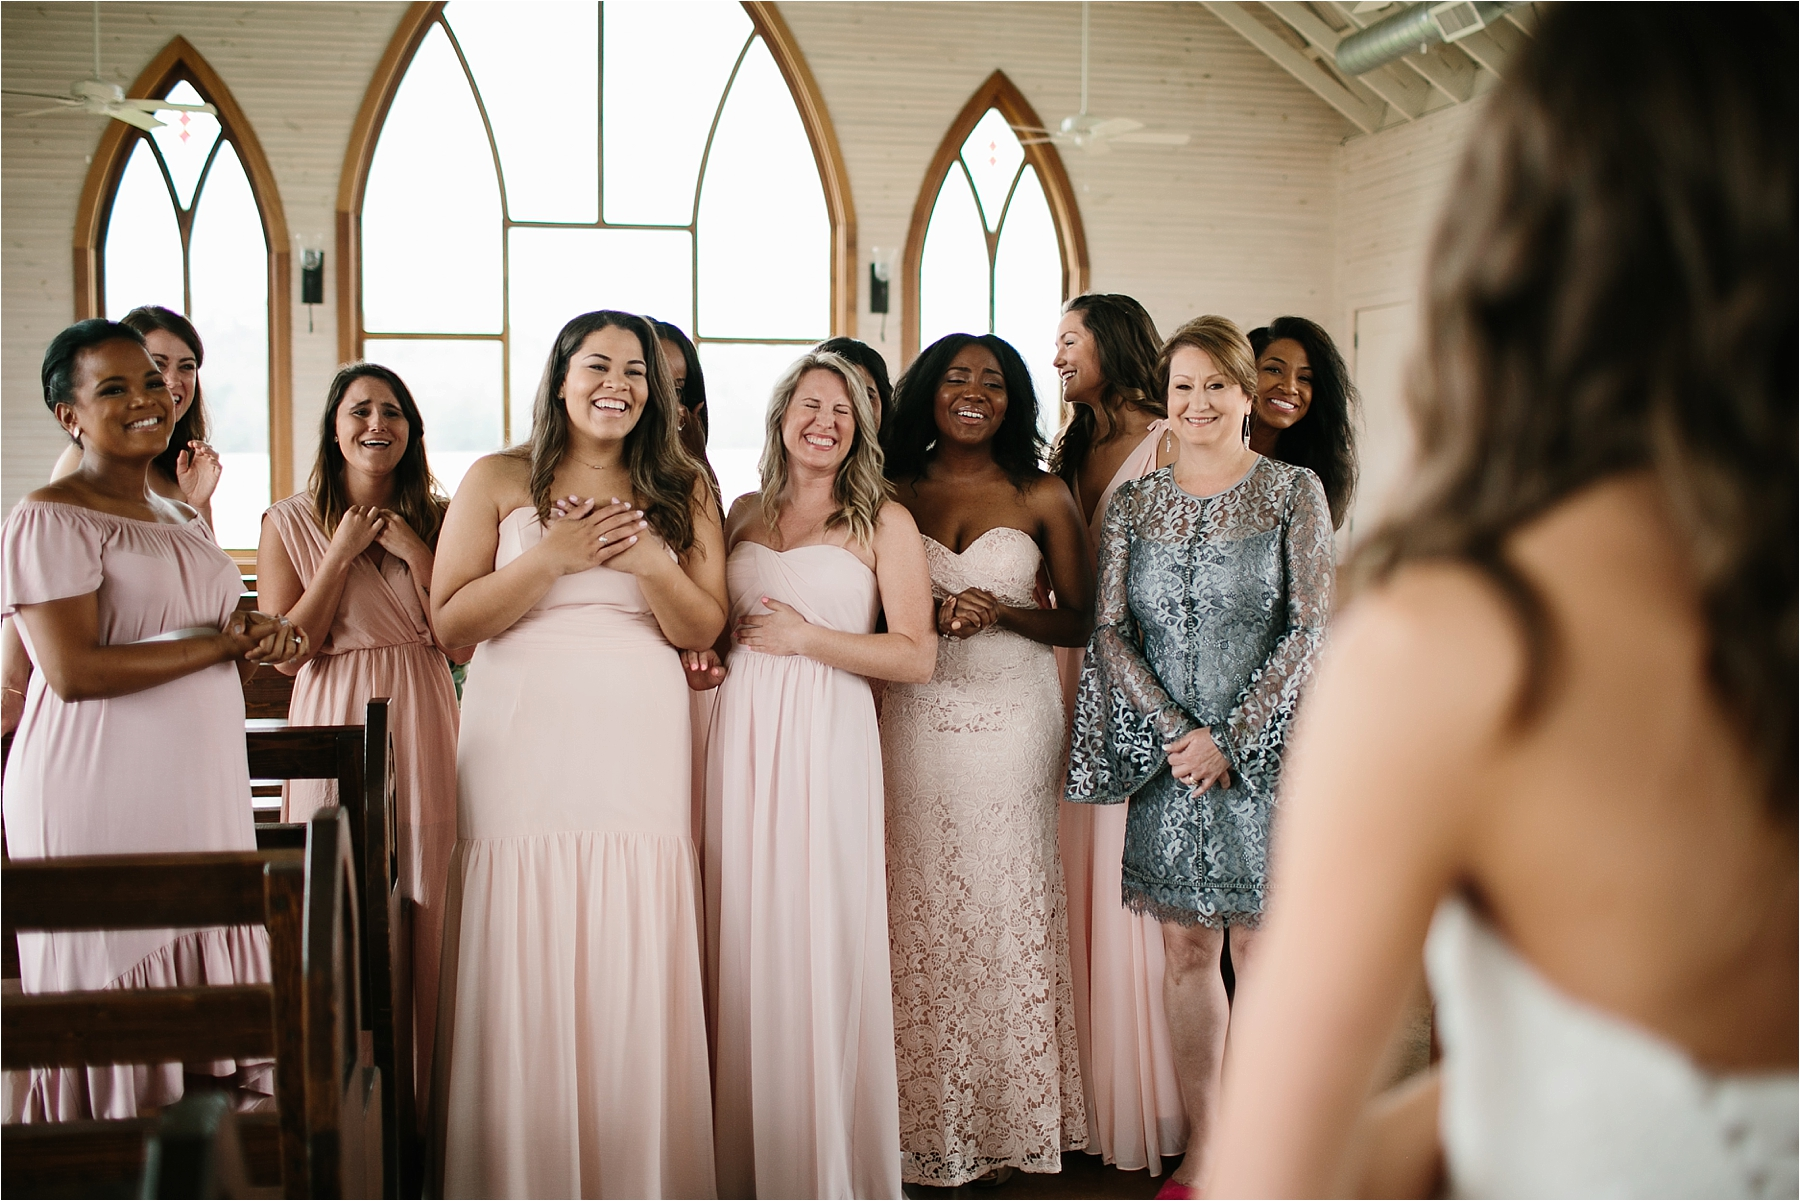 Lauren + Matt __ an intimate, emotional, blush pink, navy blue, and greenery toned wedding accents at the Brooks at Weatherford by North Texas Wedding Photographer Rachel Meagan Photography016